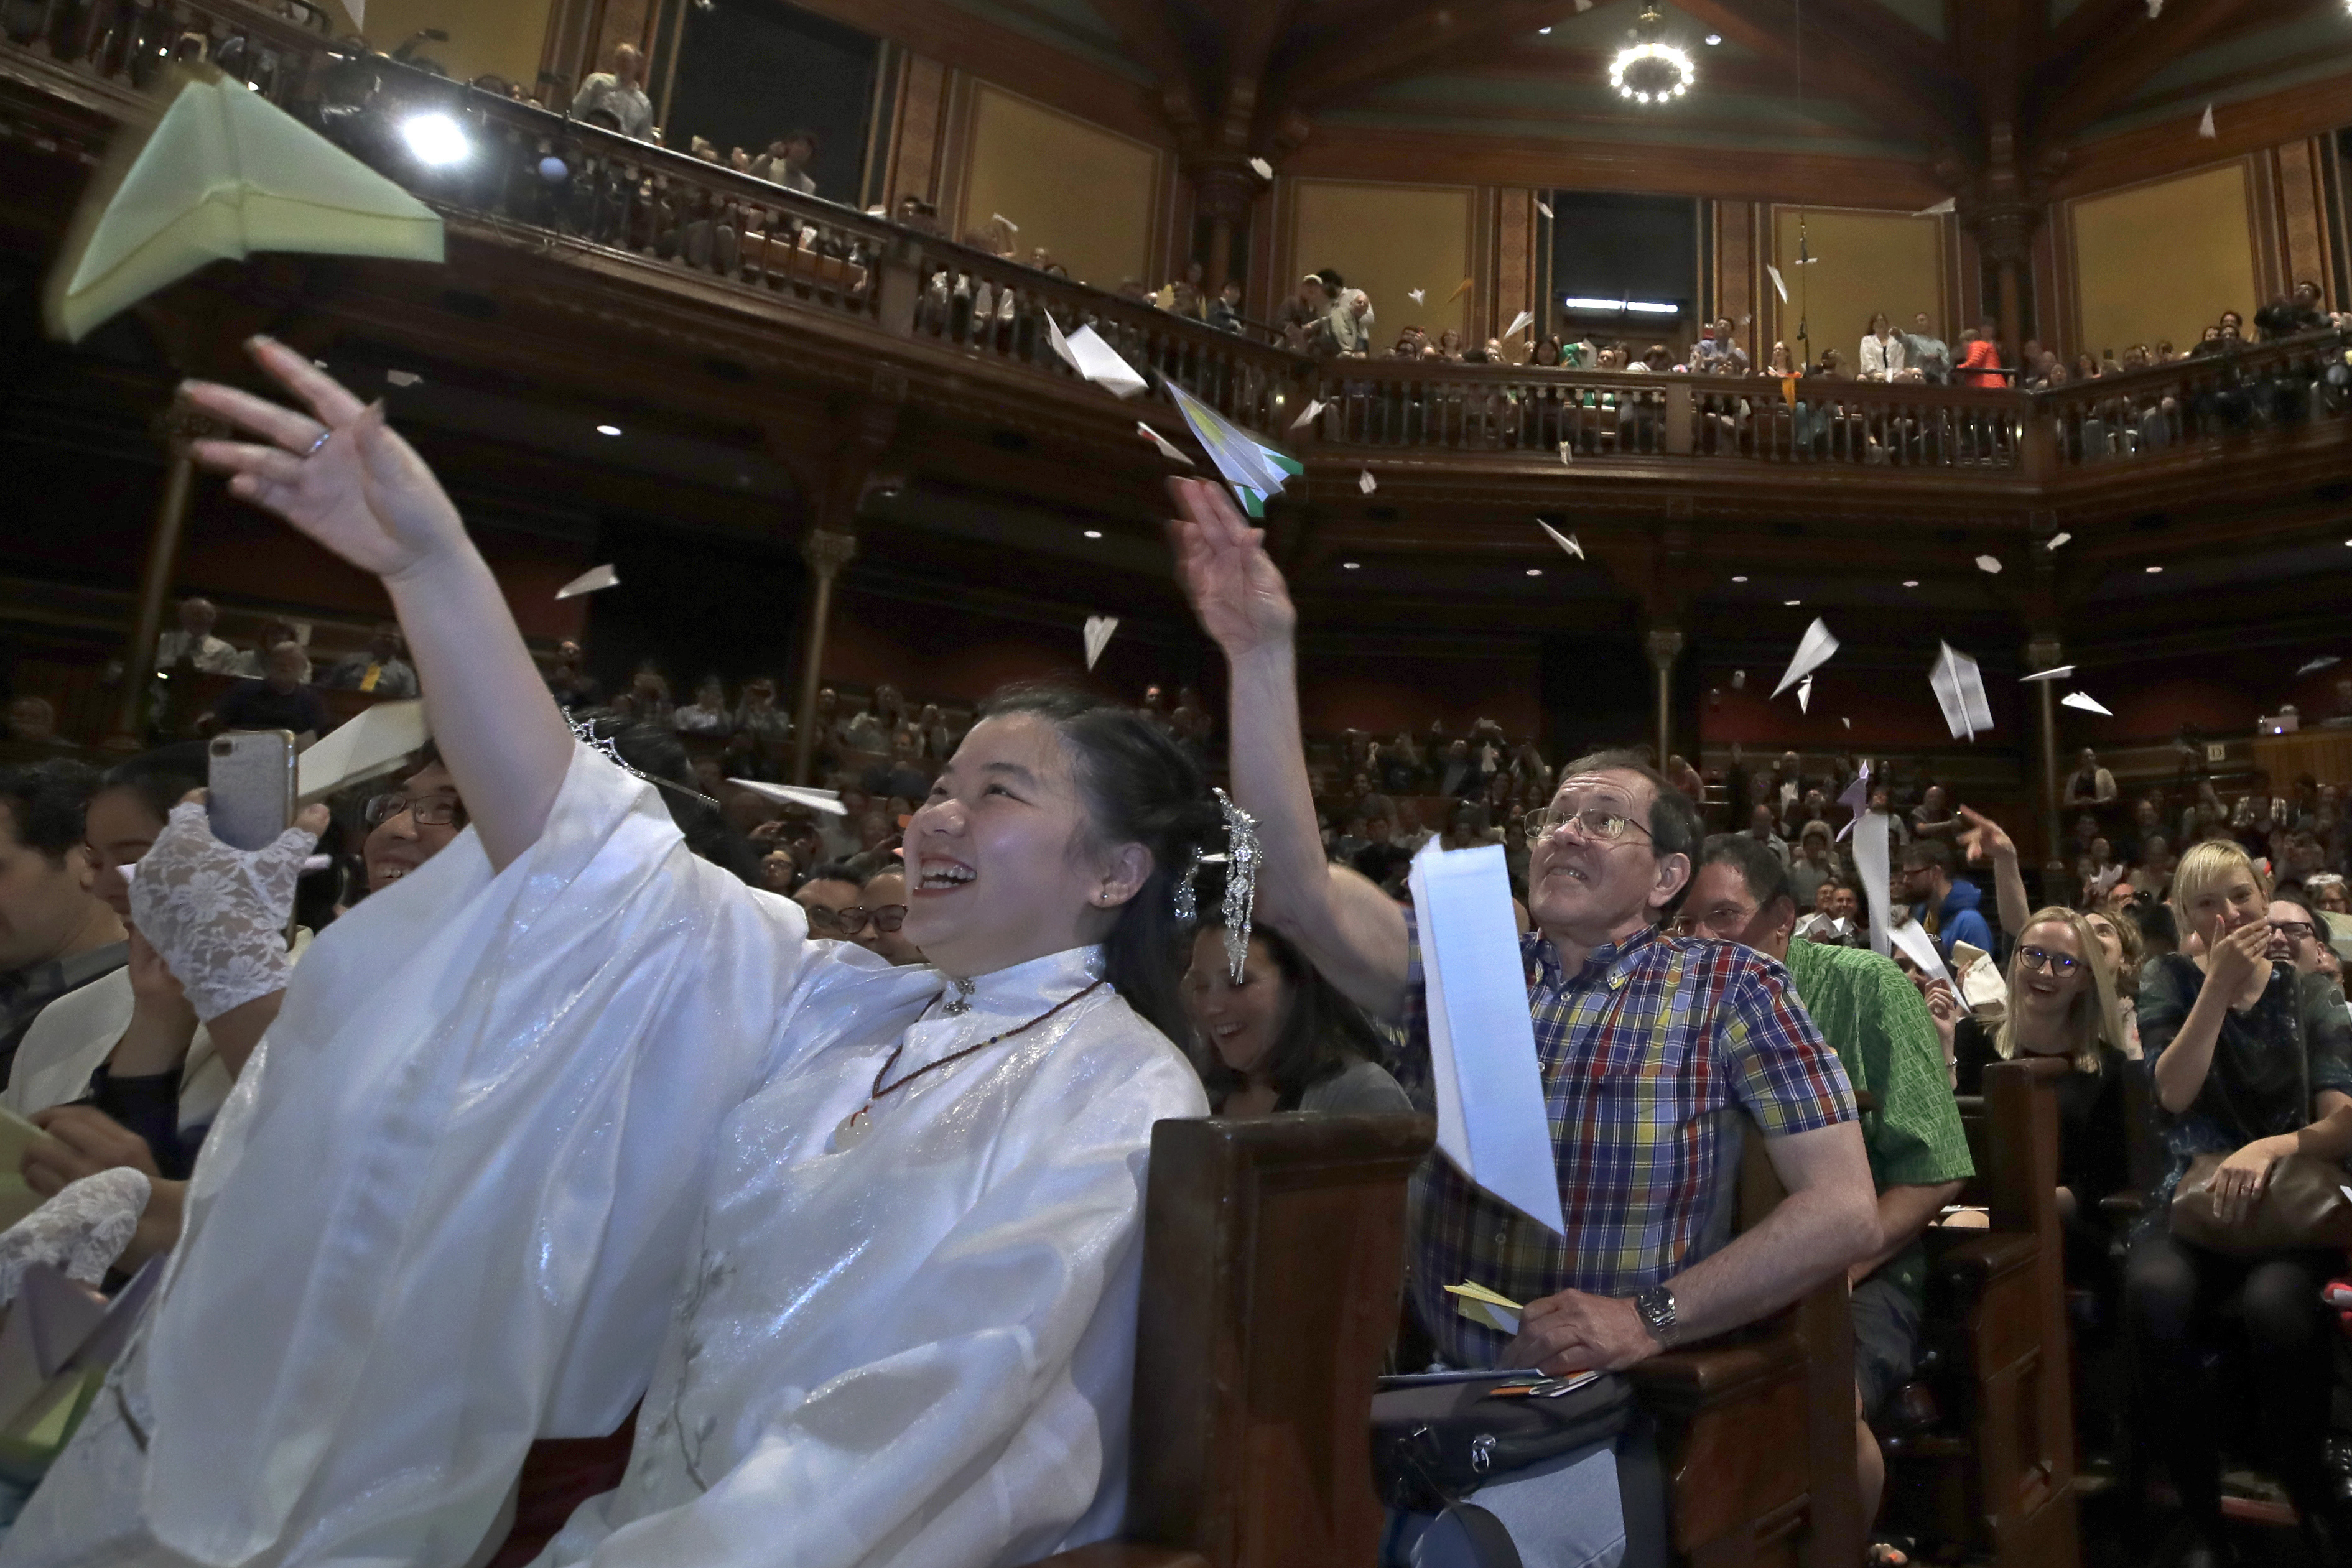 In this September 12, 2019 file photo, audience members toss paper airplanes at the 29th annual Ig Nobel awards ceremony at Harvard University, in Cambridge. (AP Photo/Elise Amendola, File)